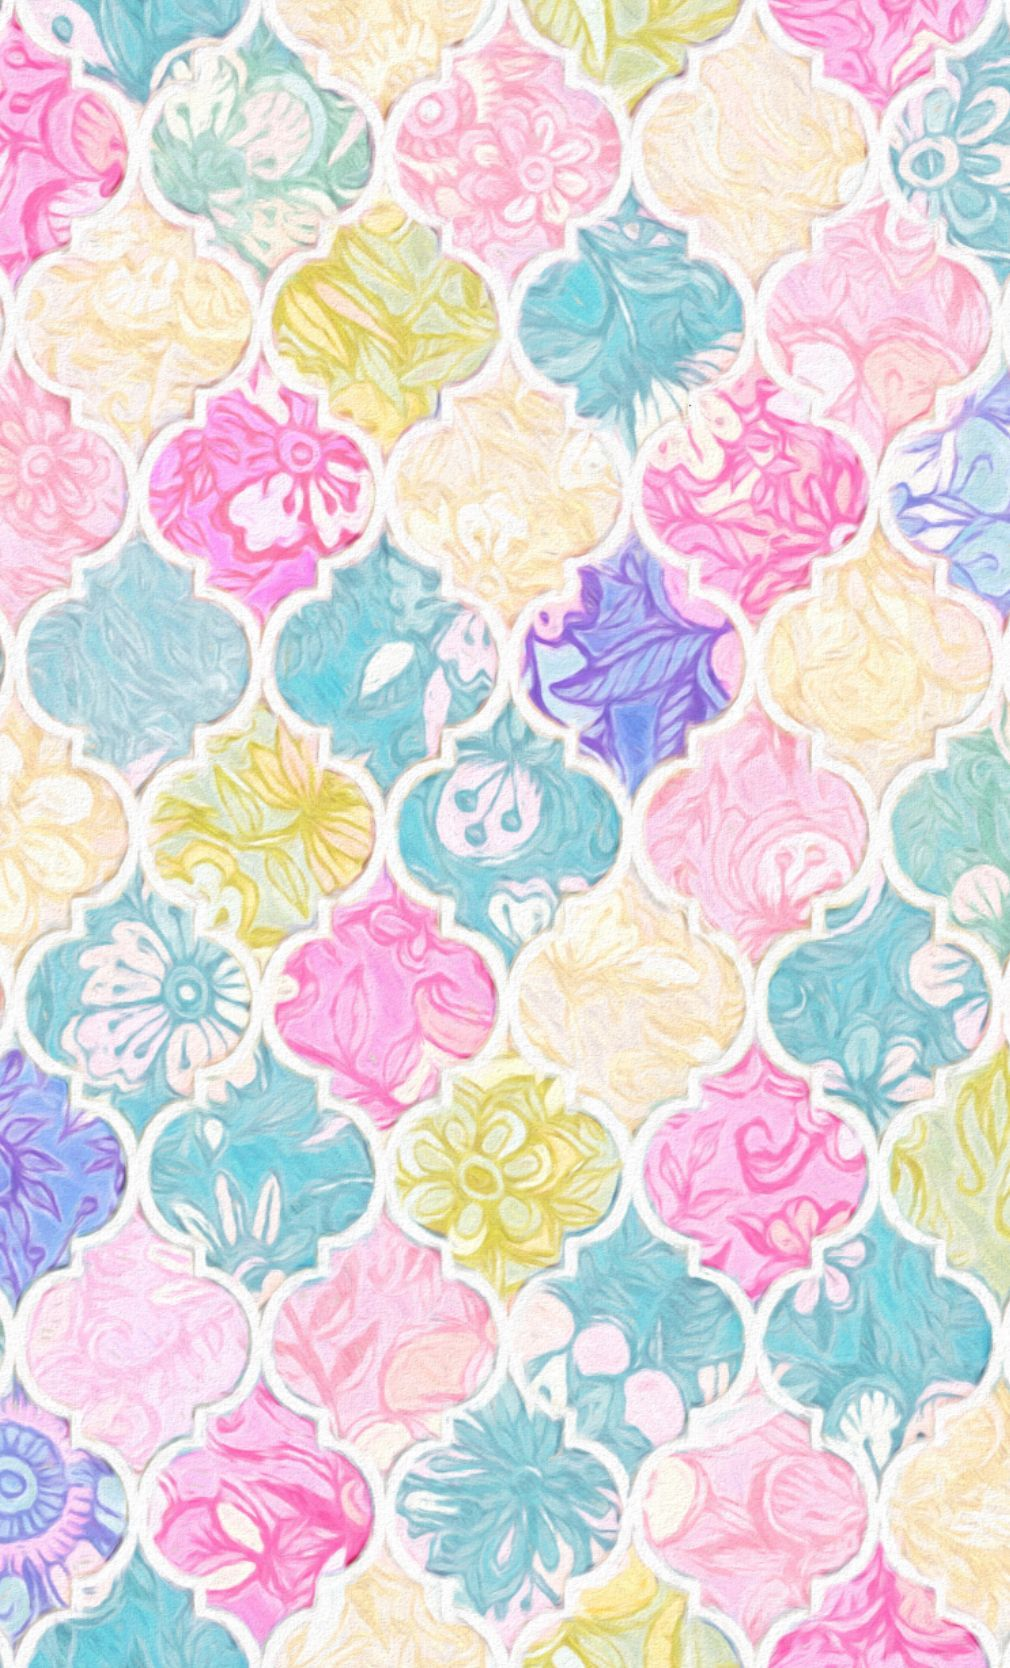 1010x1668 Soft Bright Pastel Floral Moroccan Tiles fabric by Micklyn on ...